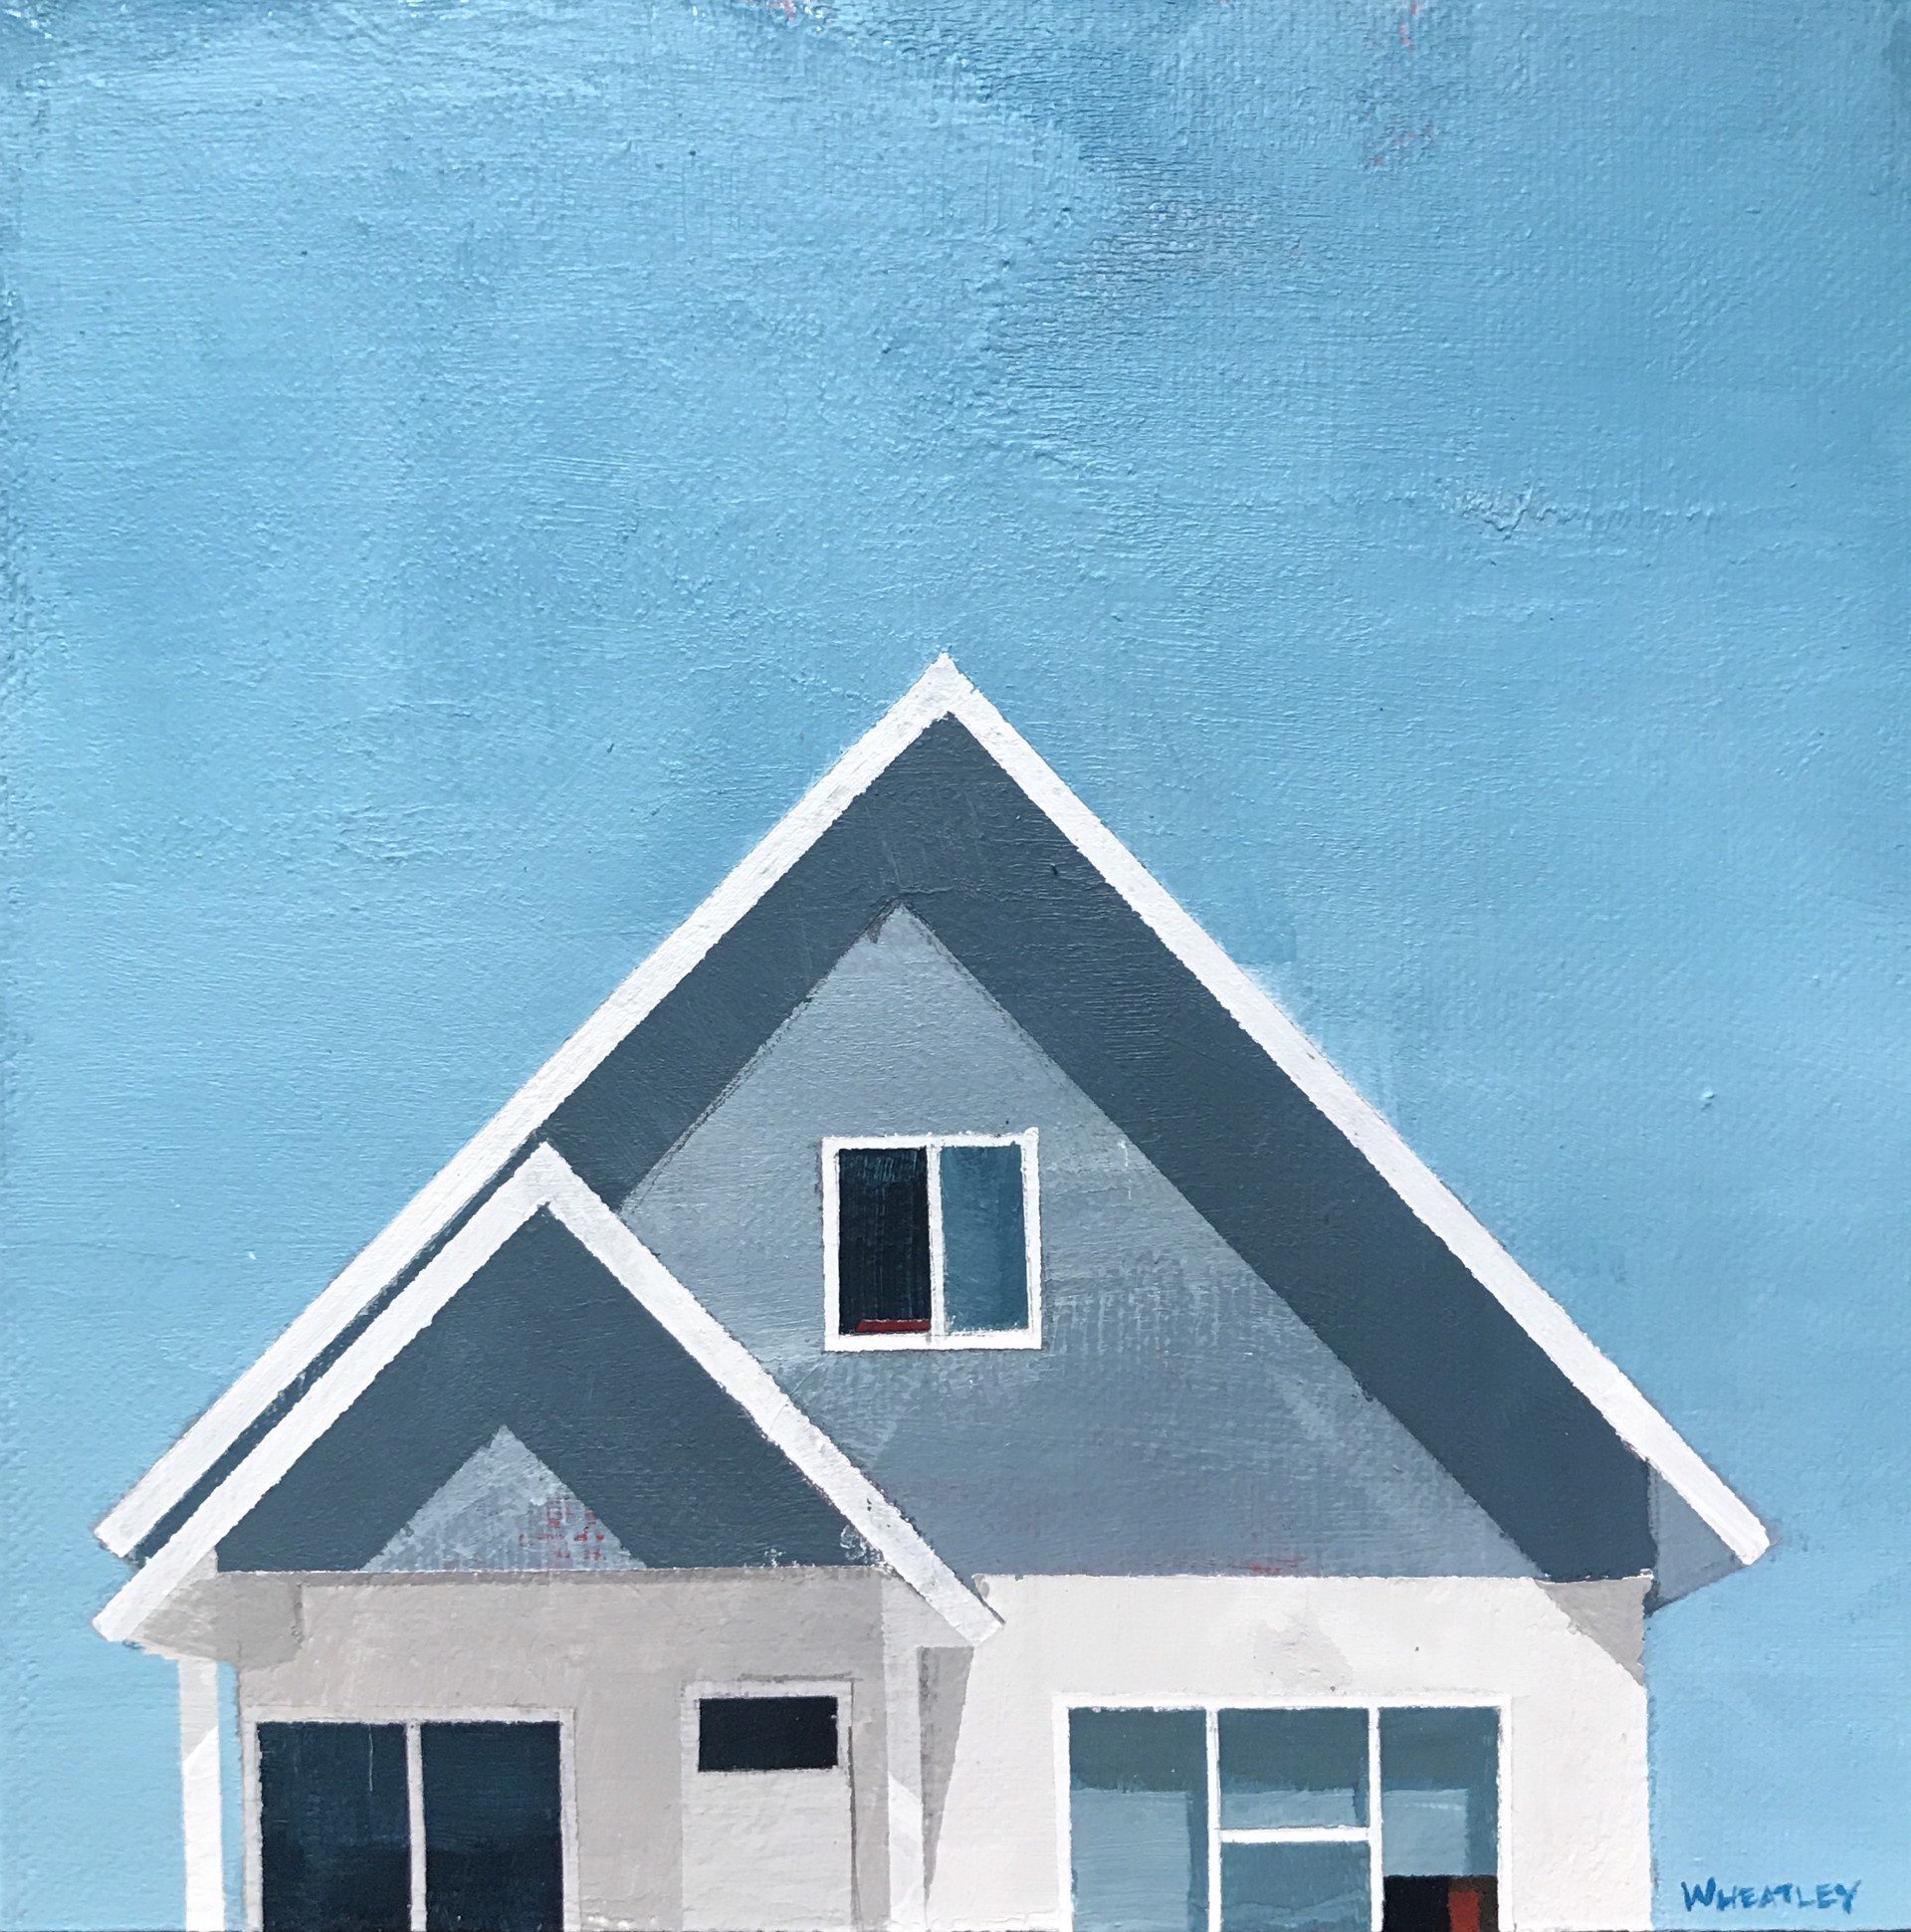 Blue House by Justin Wheatley